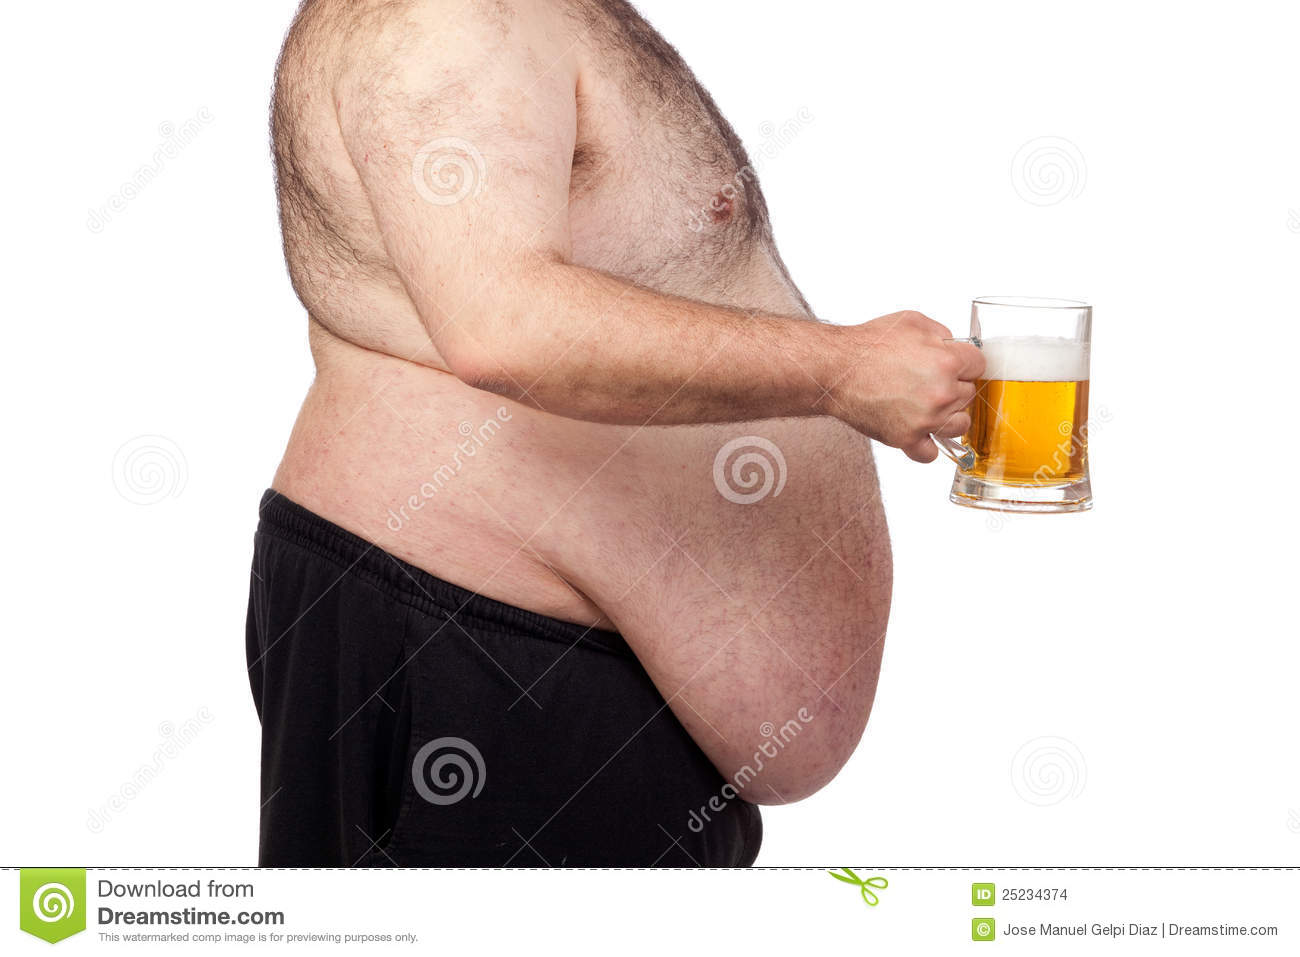 Fat Man Drinking A Jar Of Beer Stock Images - Image: 25234374